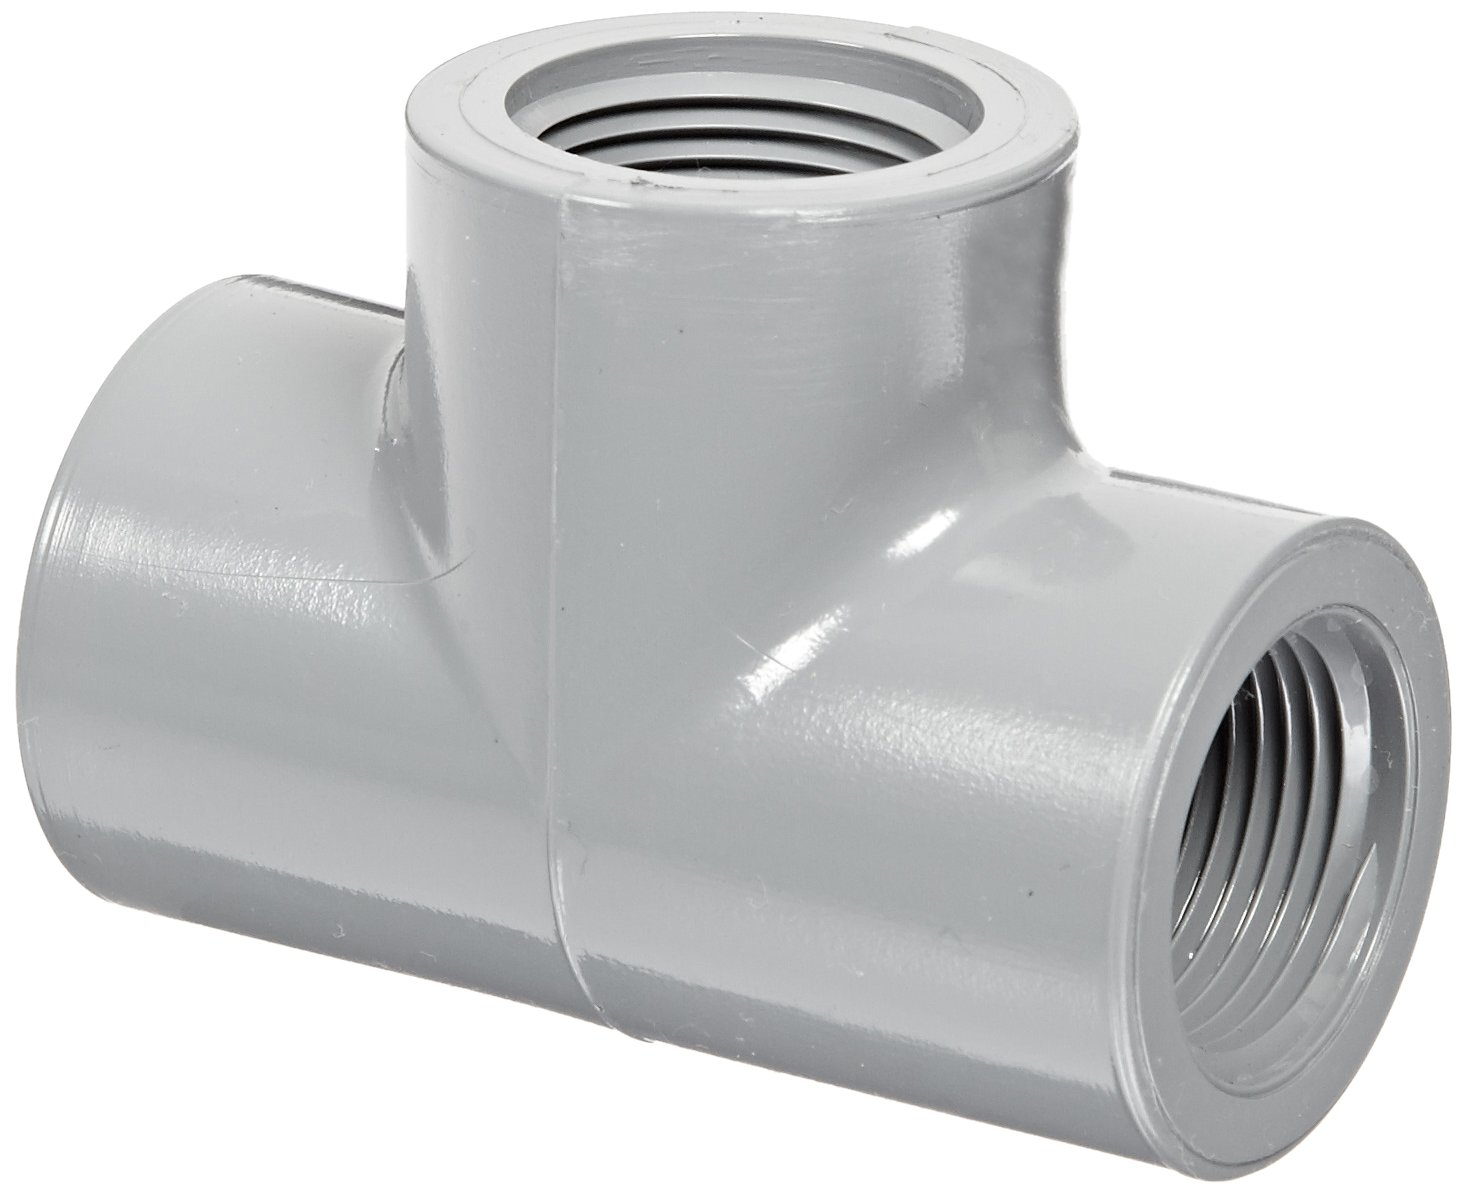 1//2 NPT Female Schedule 80 Tee Spears 805-C Series CPVC Pipe Fitting